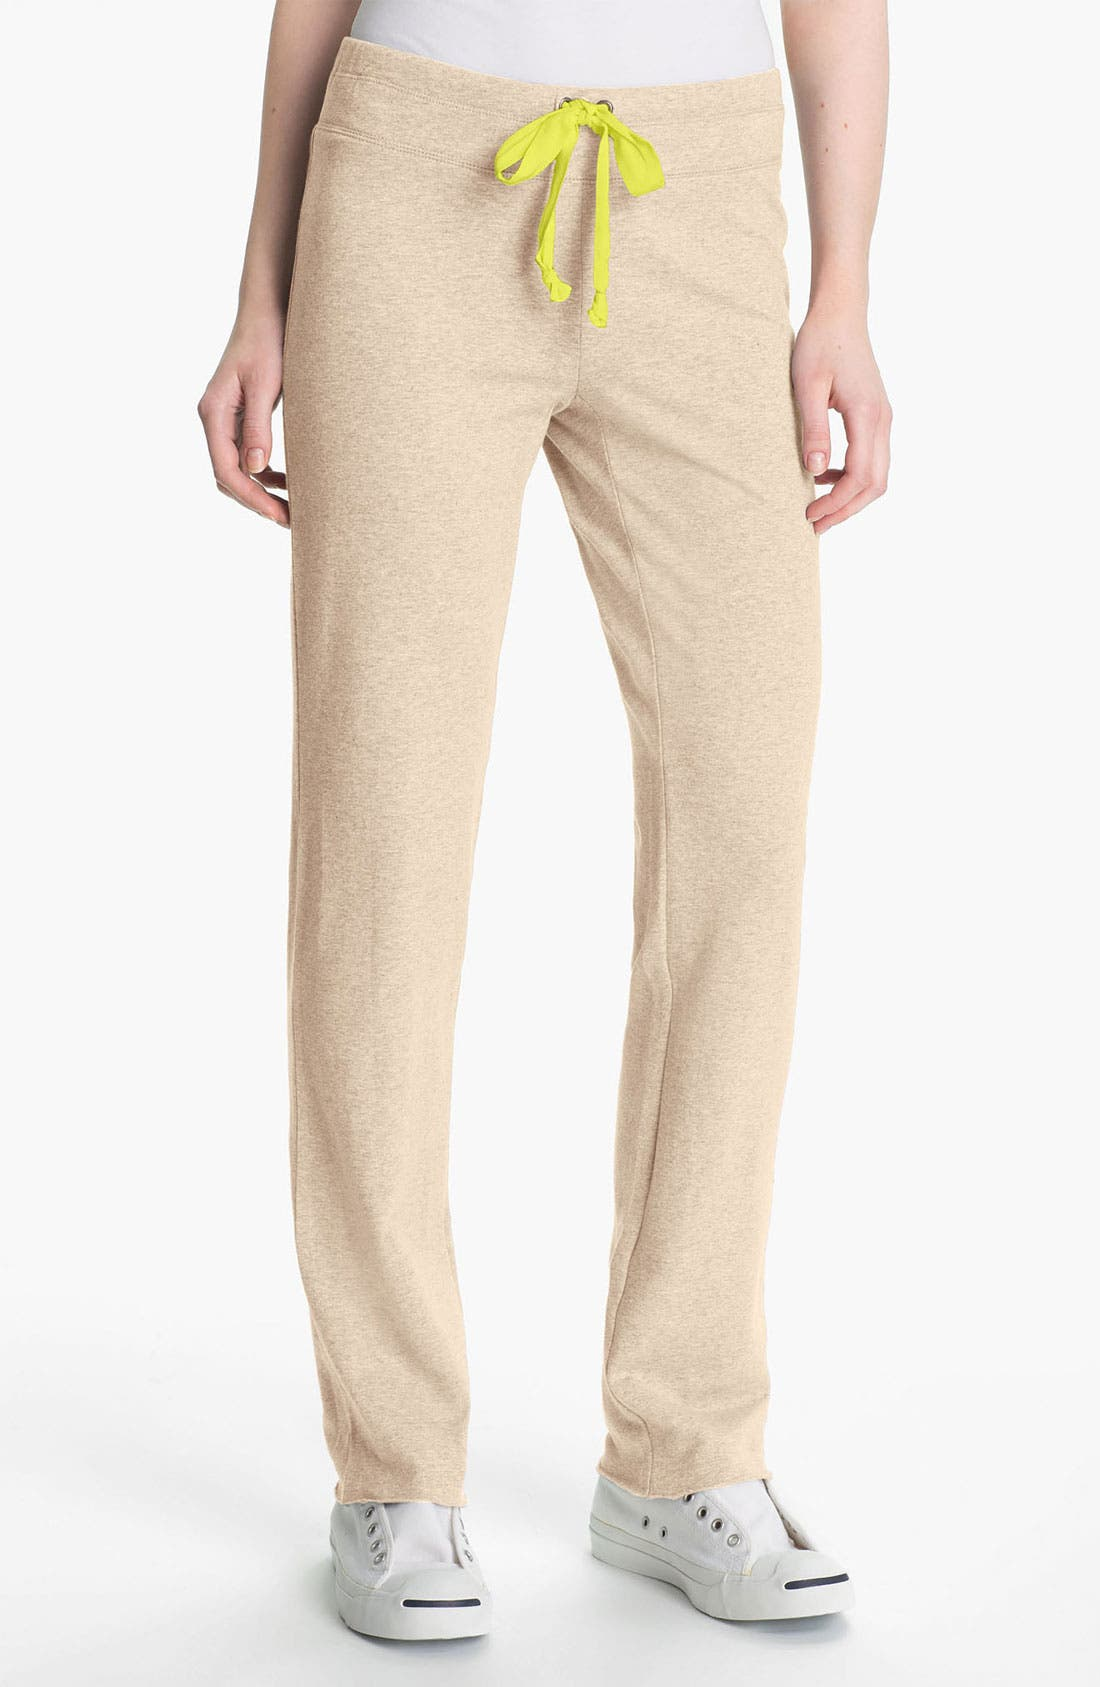 Alternate Image 1 Selected - Two by Vince Camuto Drawstring Pants